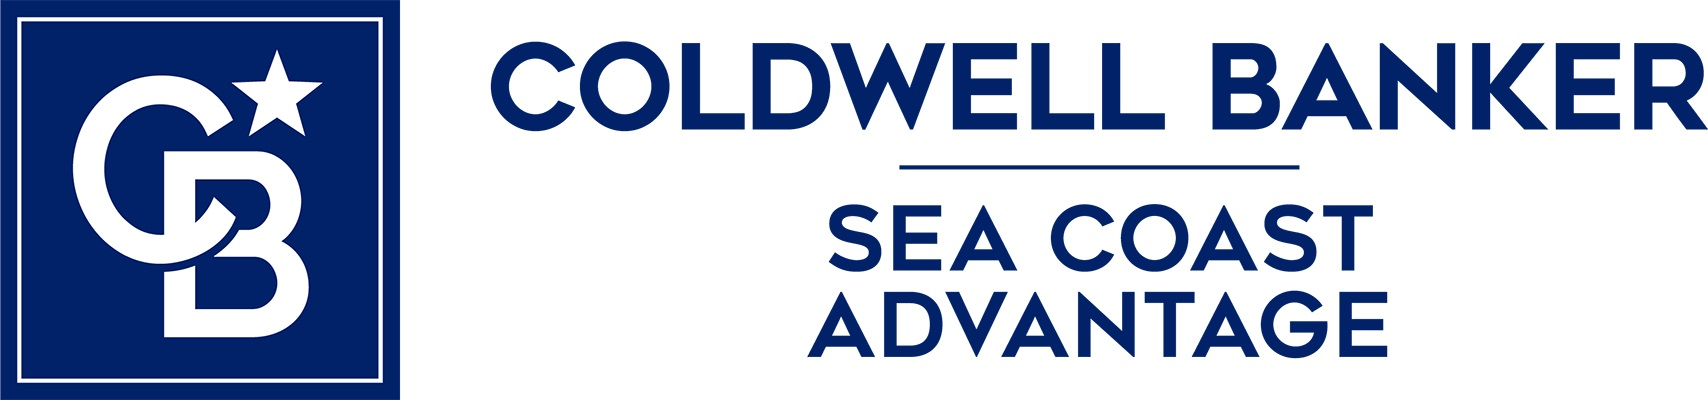 Julie Postma - Coldwell Banker Sea Coast Advantage Realty